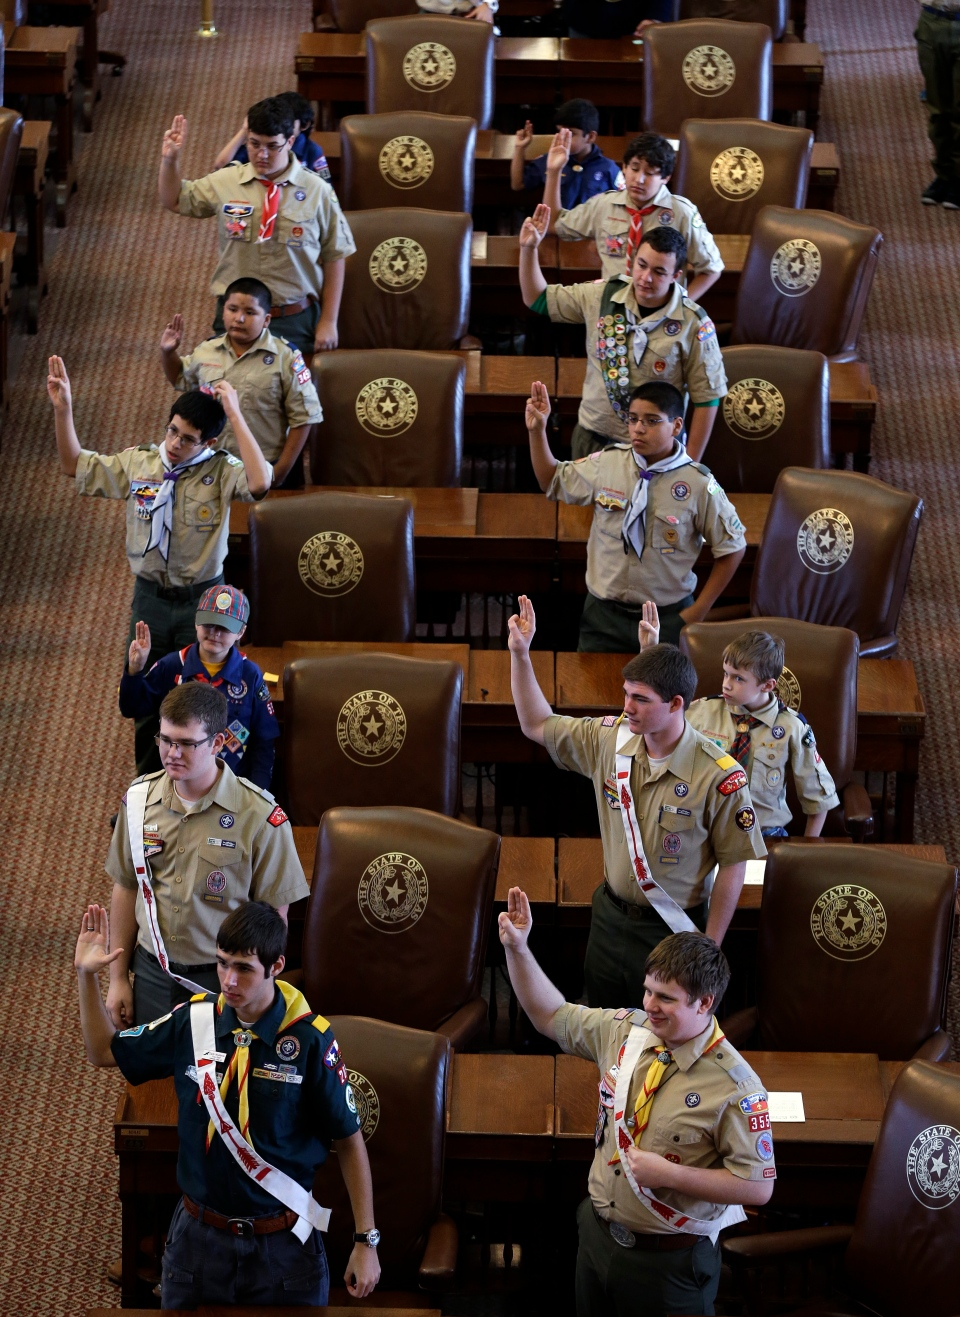 Boy Scouts recite the Scout Oath during the annual Boy Scouts Parade and Report to State in the House Chambers at the Texas capitol, in Austin, Texas in this photo taken Feb. 2, 2013.(AP / Eric Gay)